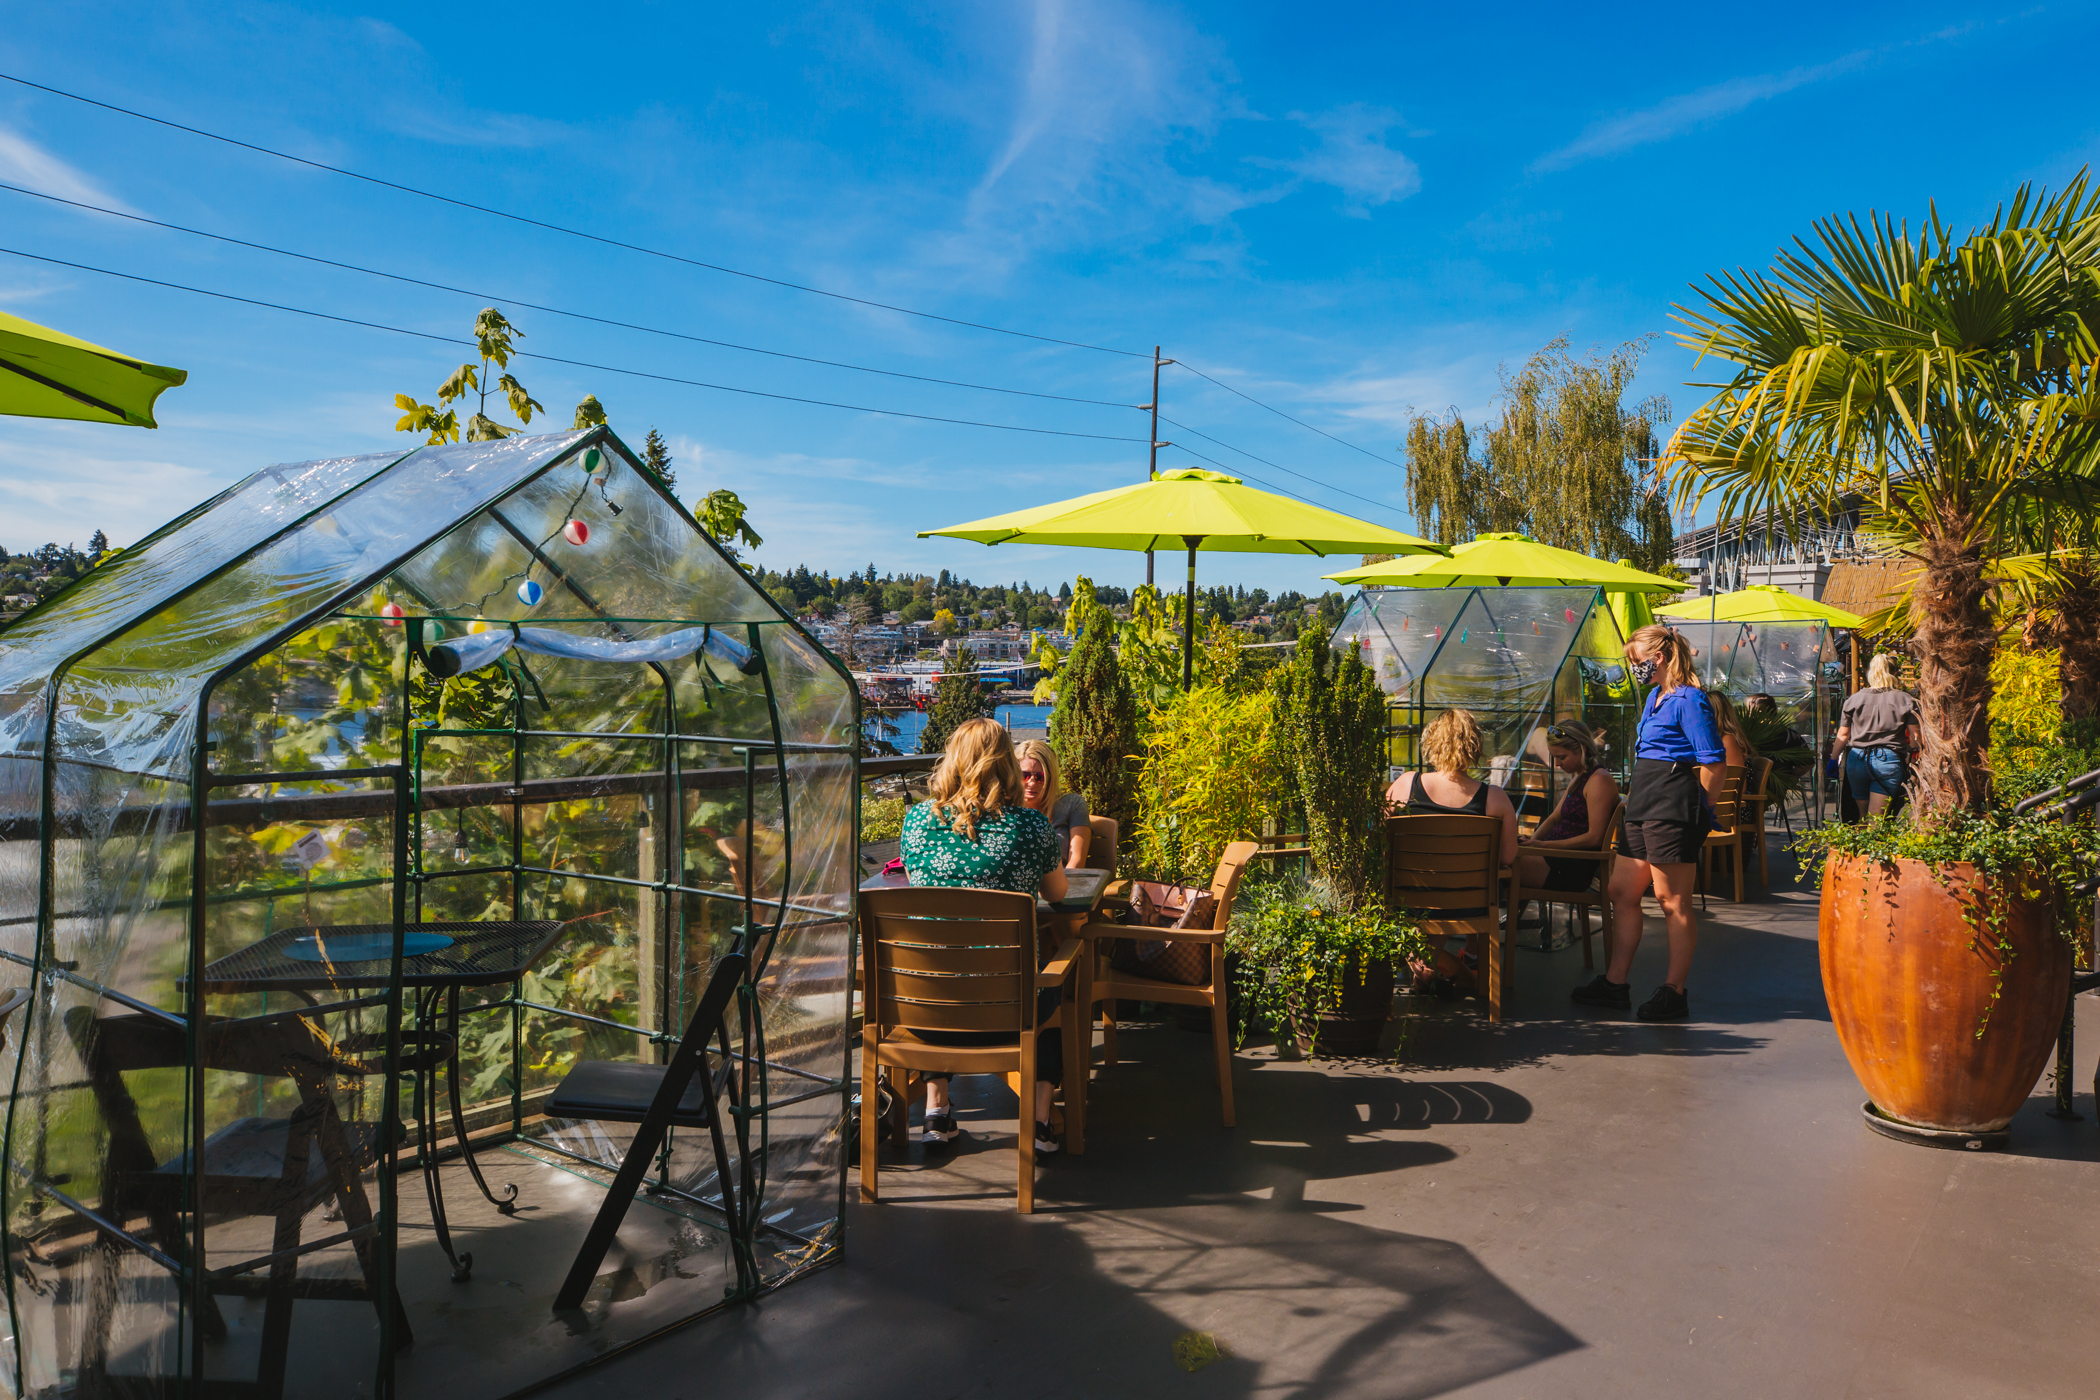 "<a  href=""https://www.facebook.com/EastlakeBarandGrill/"" target=""_blank"">Eastlake Bar & Grill (2947 Eastlake Ave. E)</a>{&nbsp;}is now offering a new outdoor ""greenhouse"" dining experience featuring tents for two on the patio. Owner{&nbsp;}John Schmidt said the atmosphere aims to provide privacy and fresh air for customers and is their ""comfortable solution to outdoor dining."" (Image:{&nbsp;}Sunita Martini / Seattle Refined)"